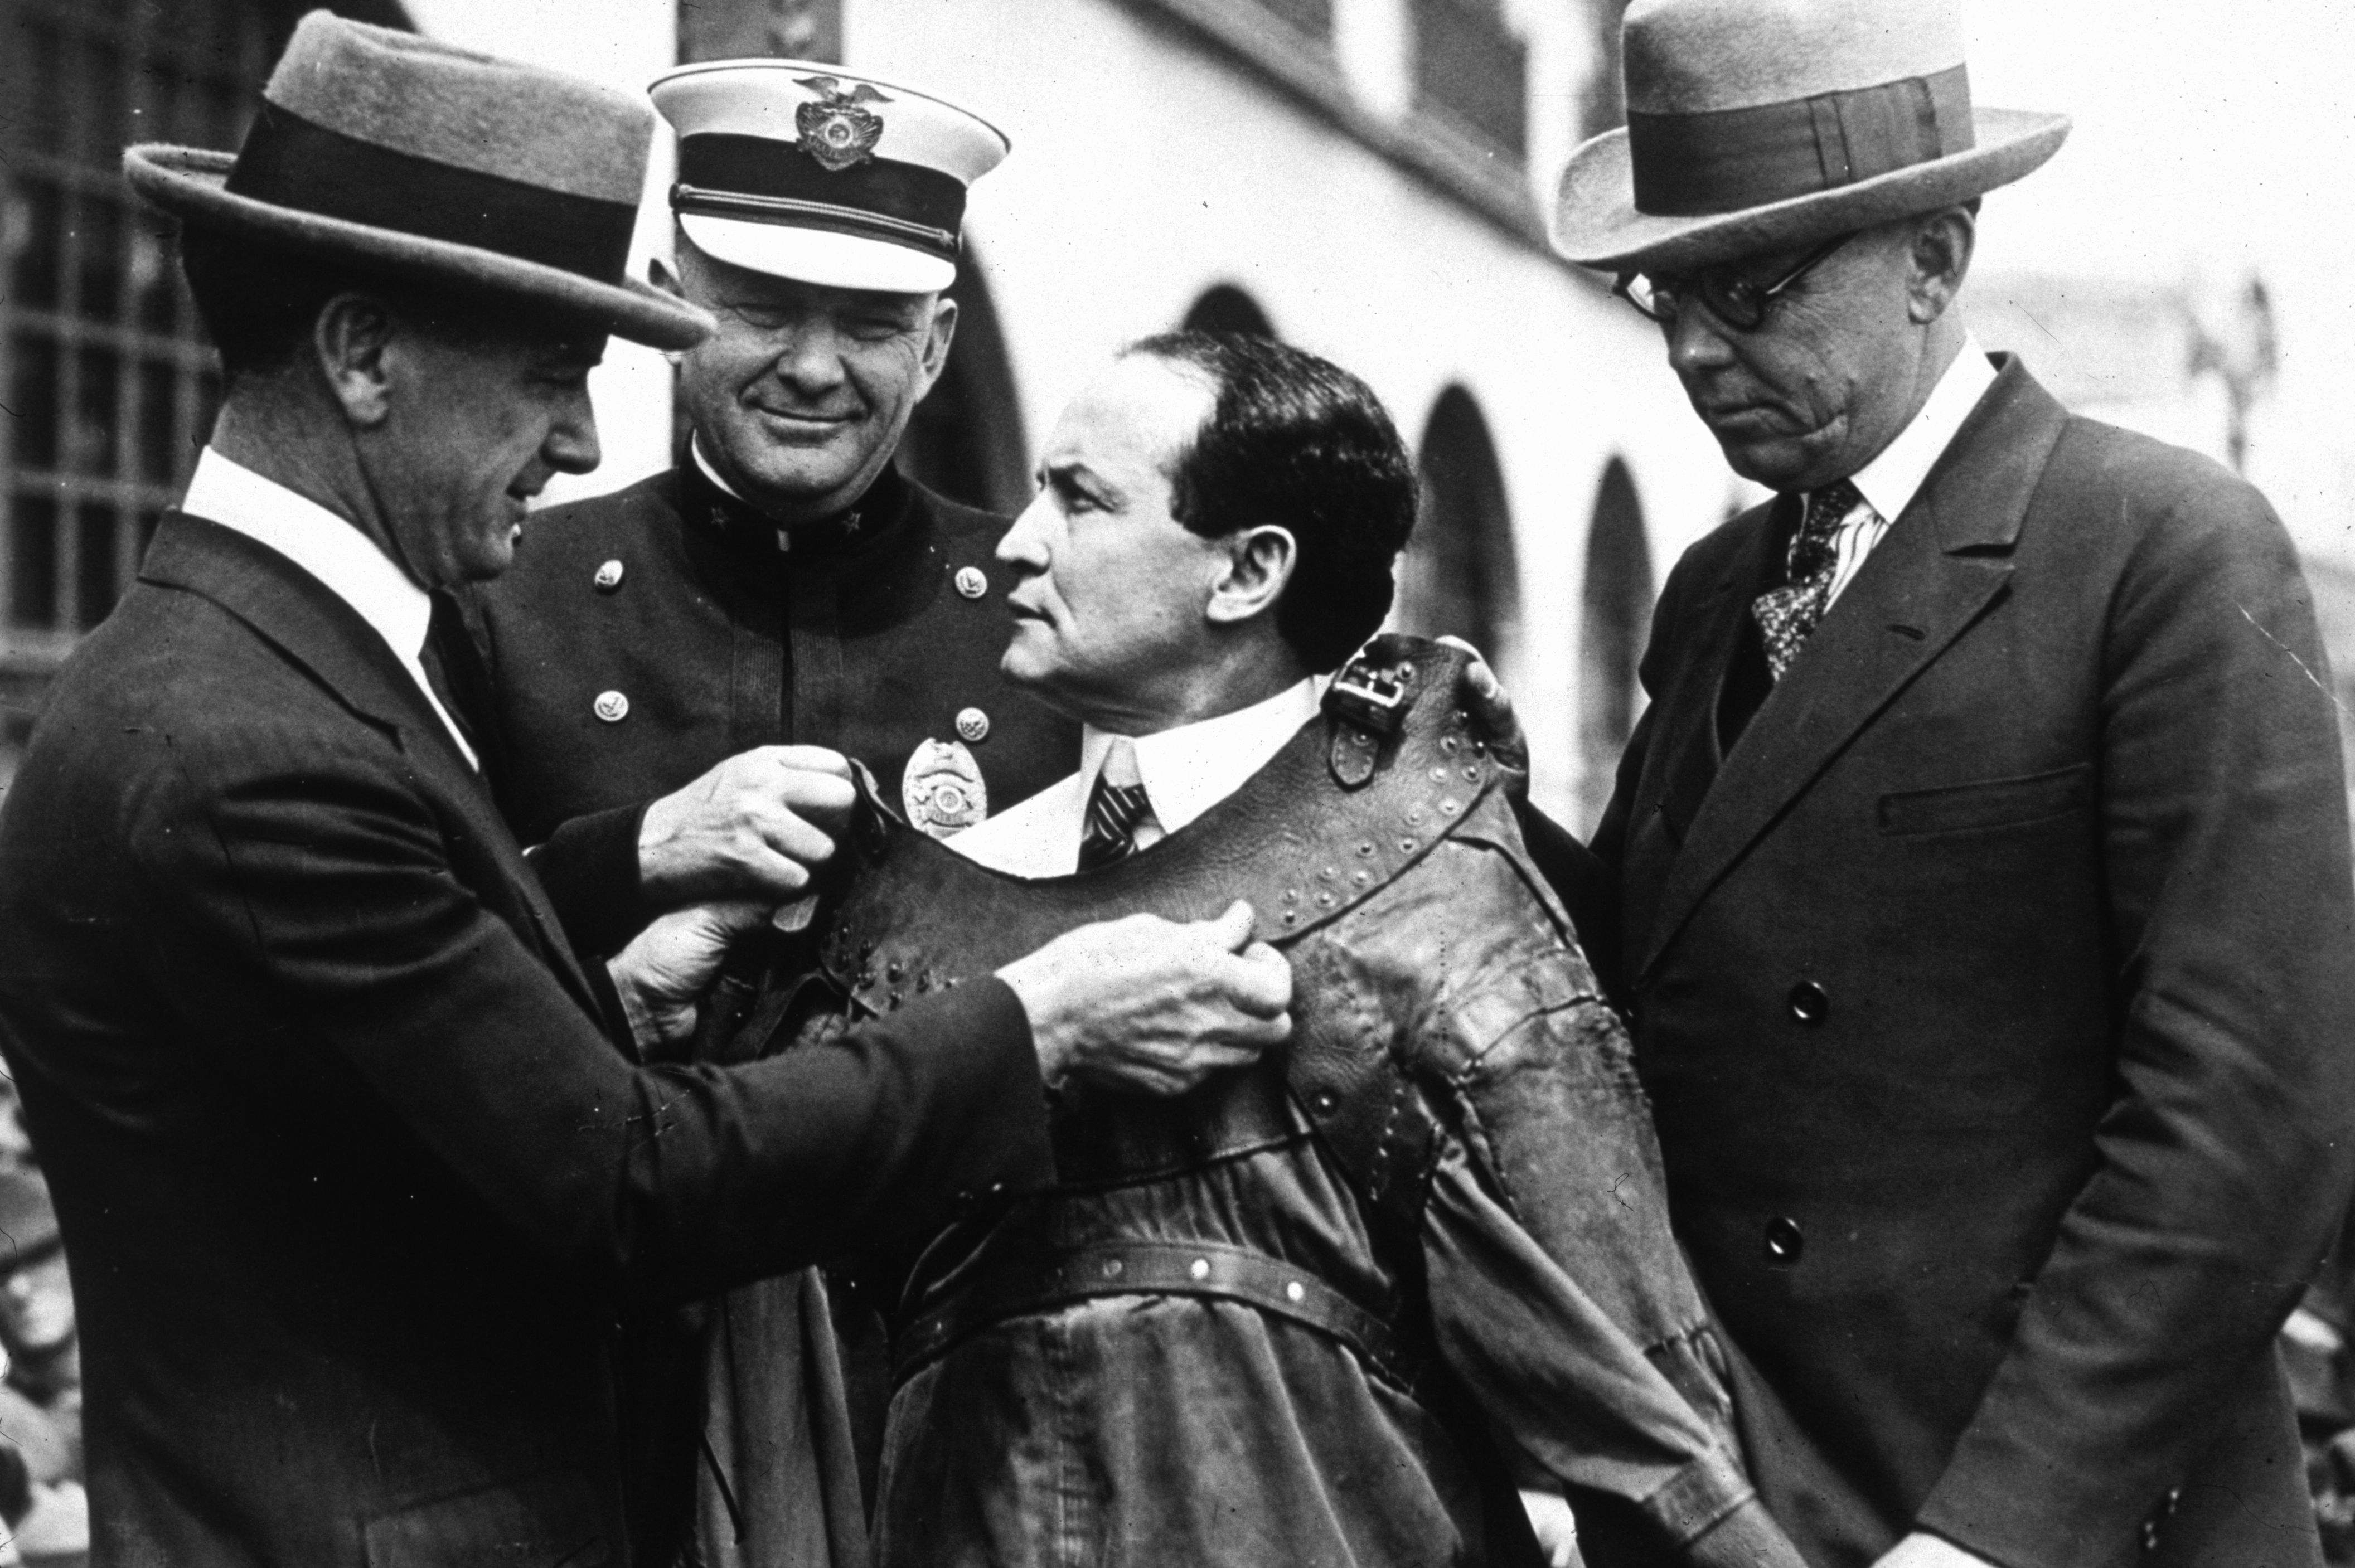 Houdini is seen being fitted into an escape proof suit.